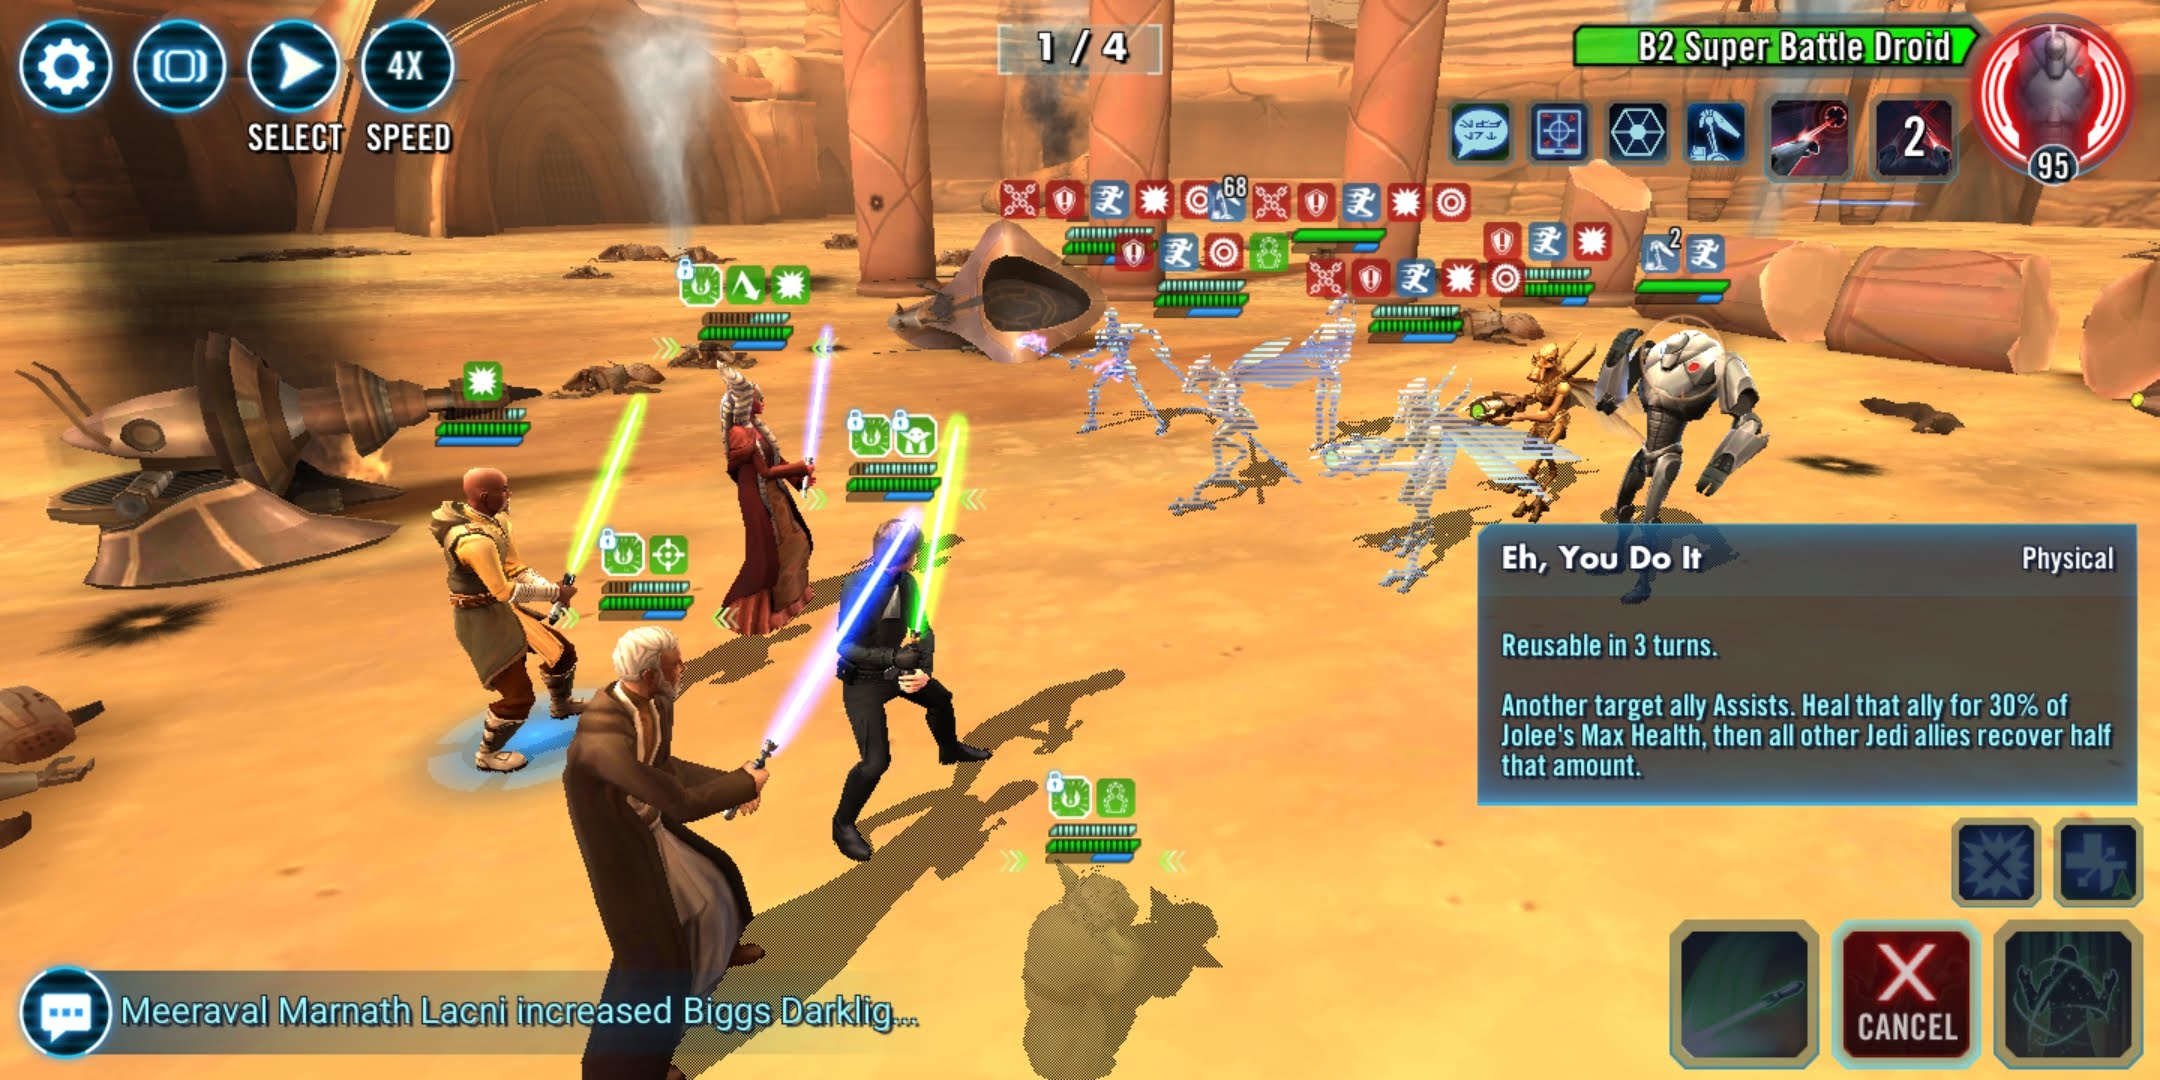 Screenshot_20201118_083550_com.ea.game.starwarscapital_row.jpg